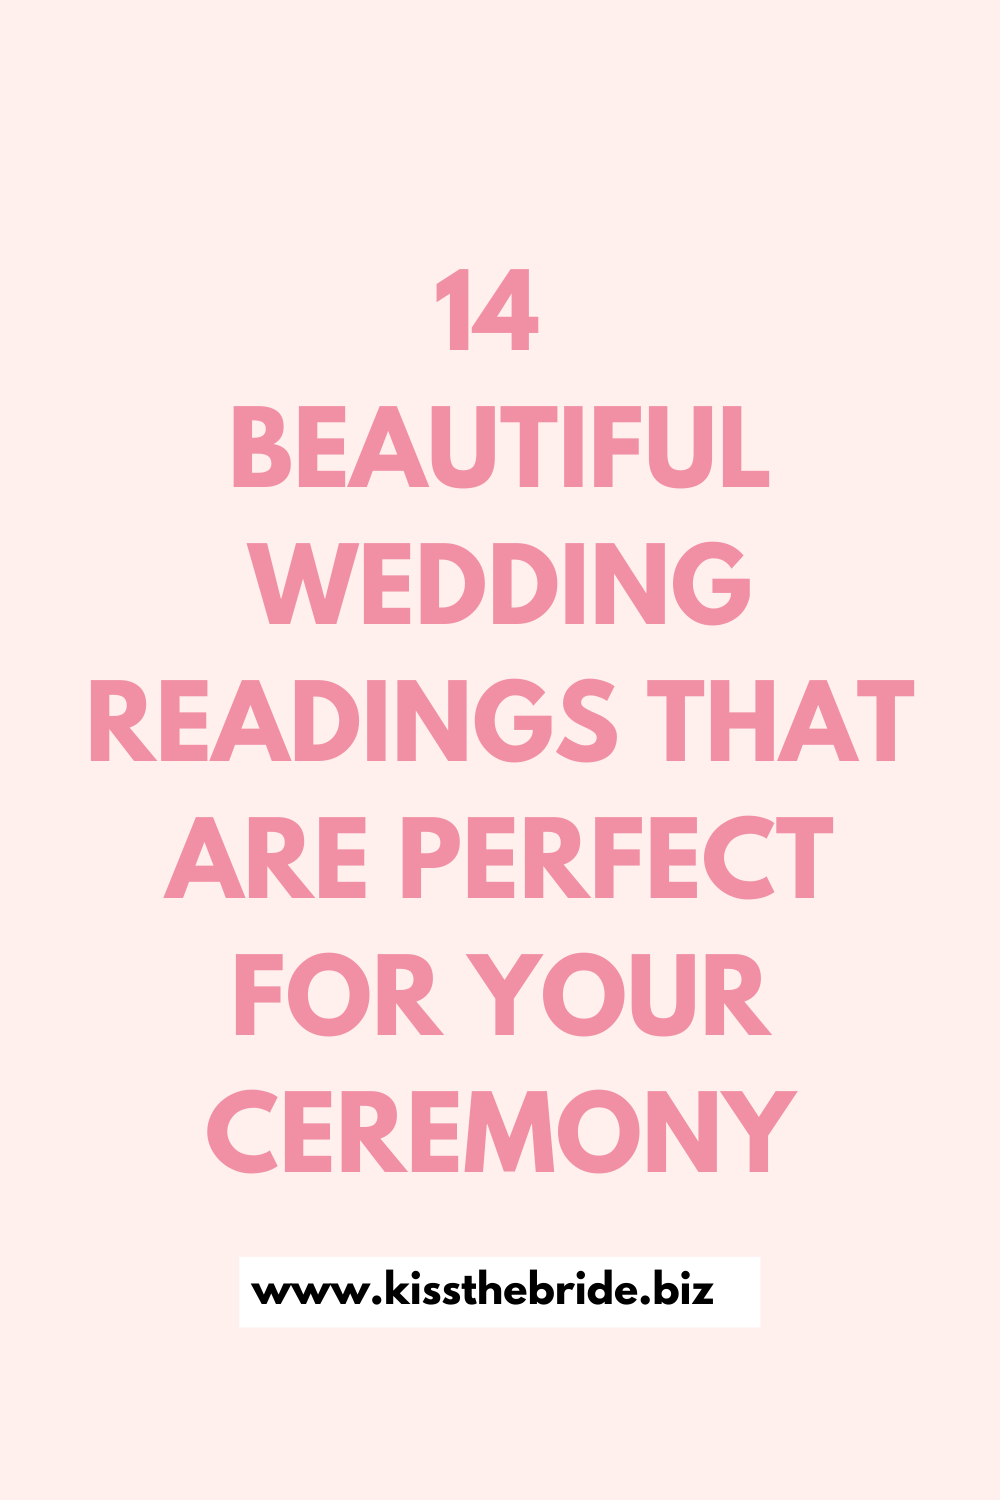 14 Wedding readings from movies